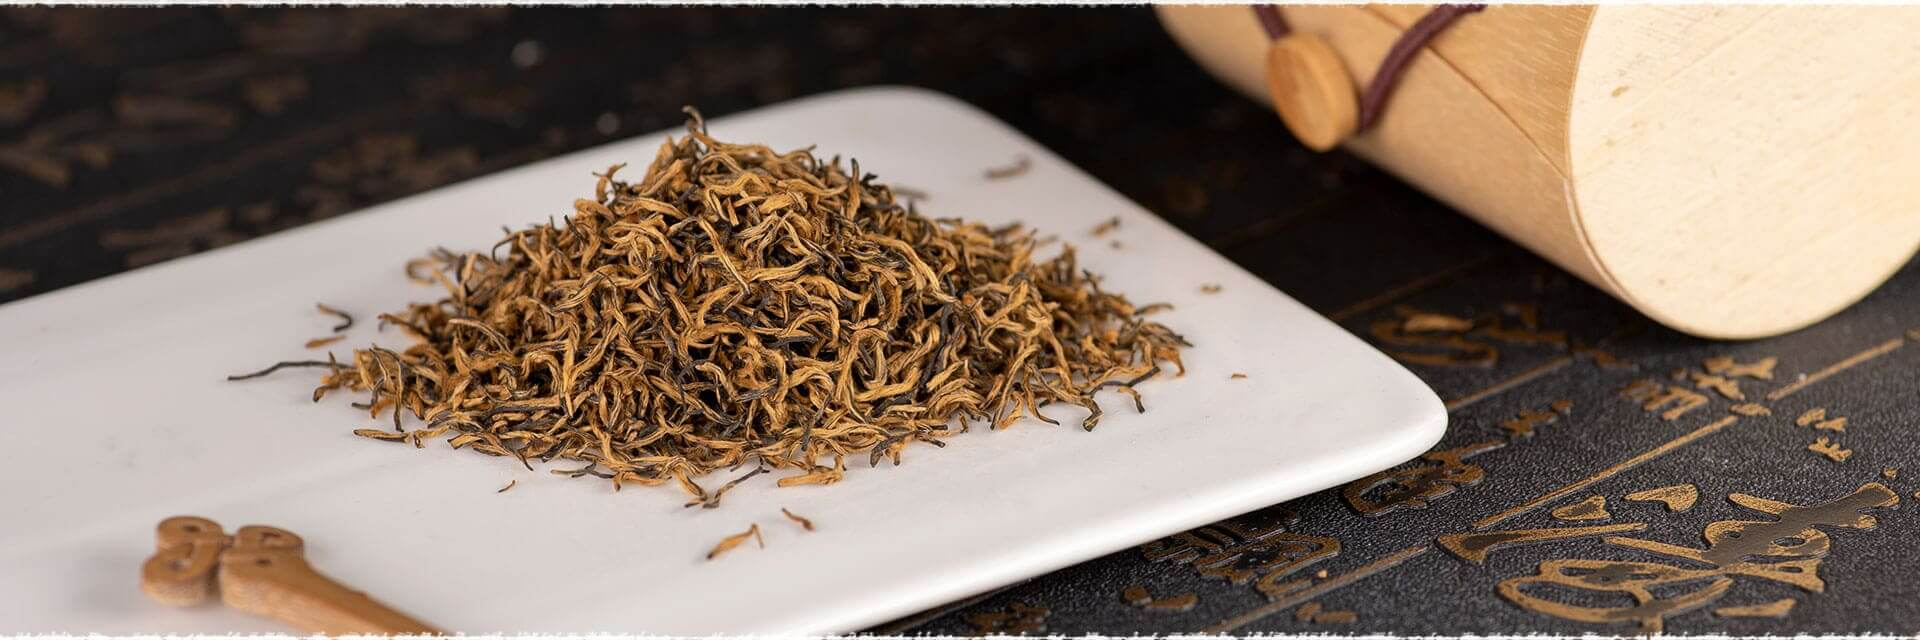 Black Tea Introduction Part 2 – The Making Process